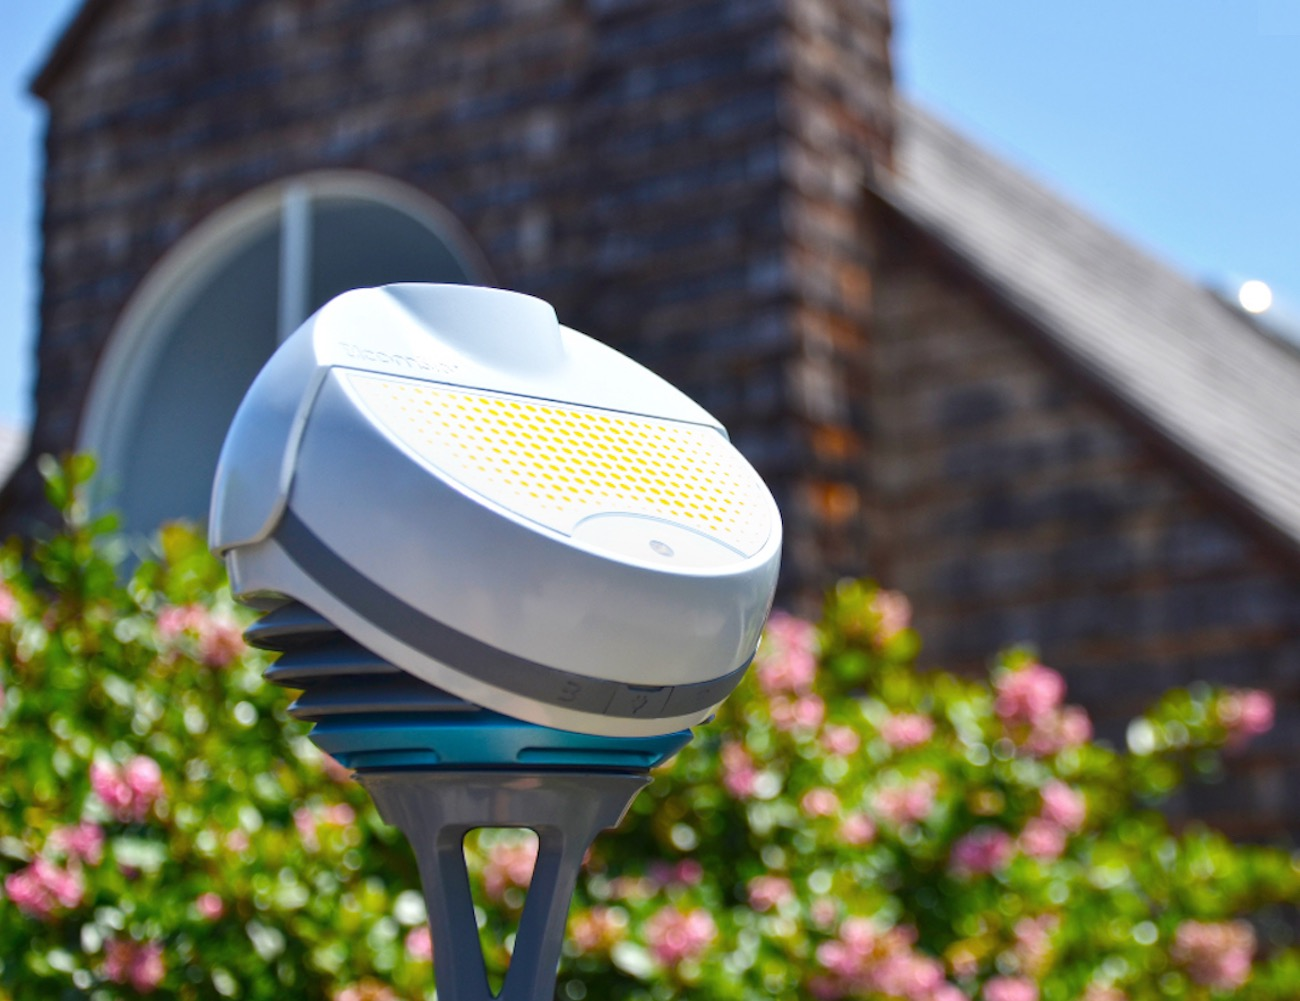 BloomSky Outdoor Weather Station Kit